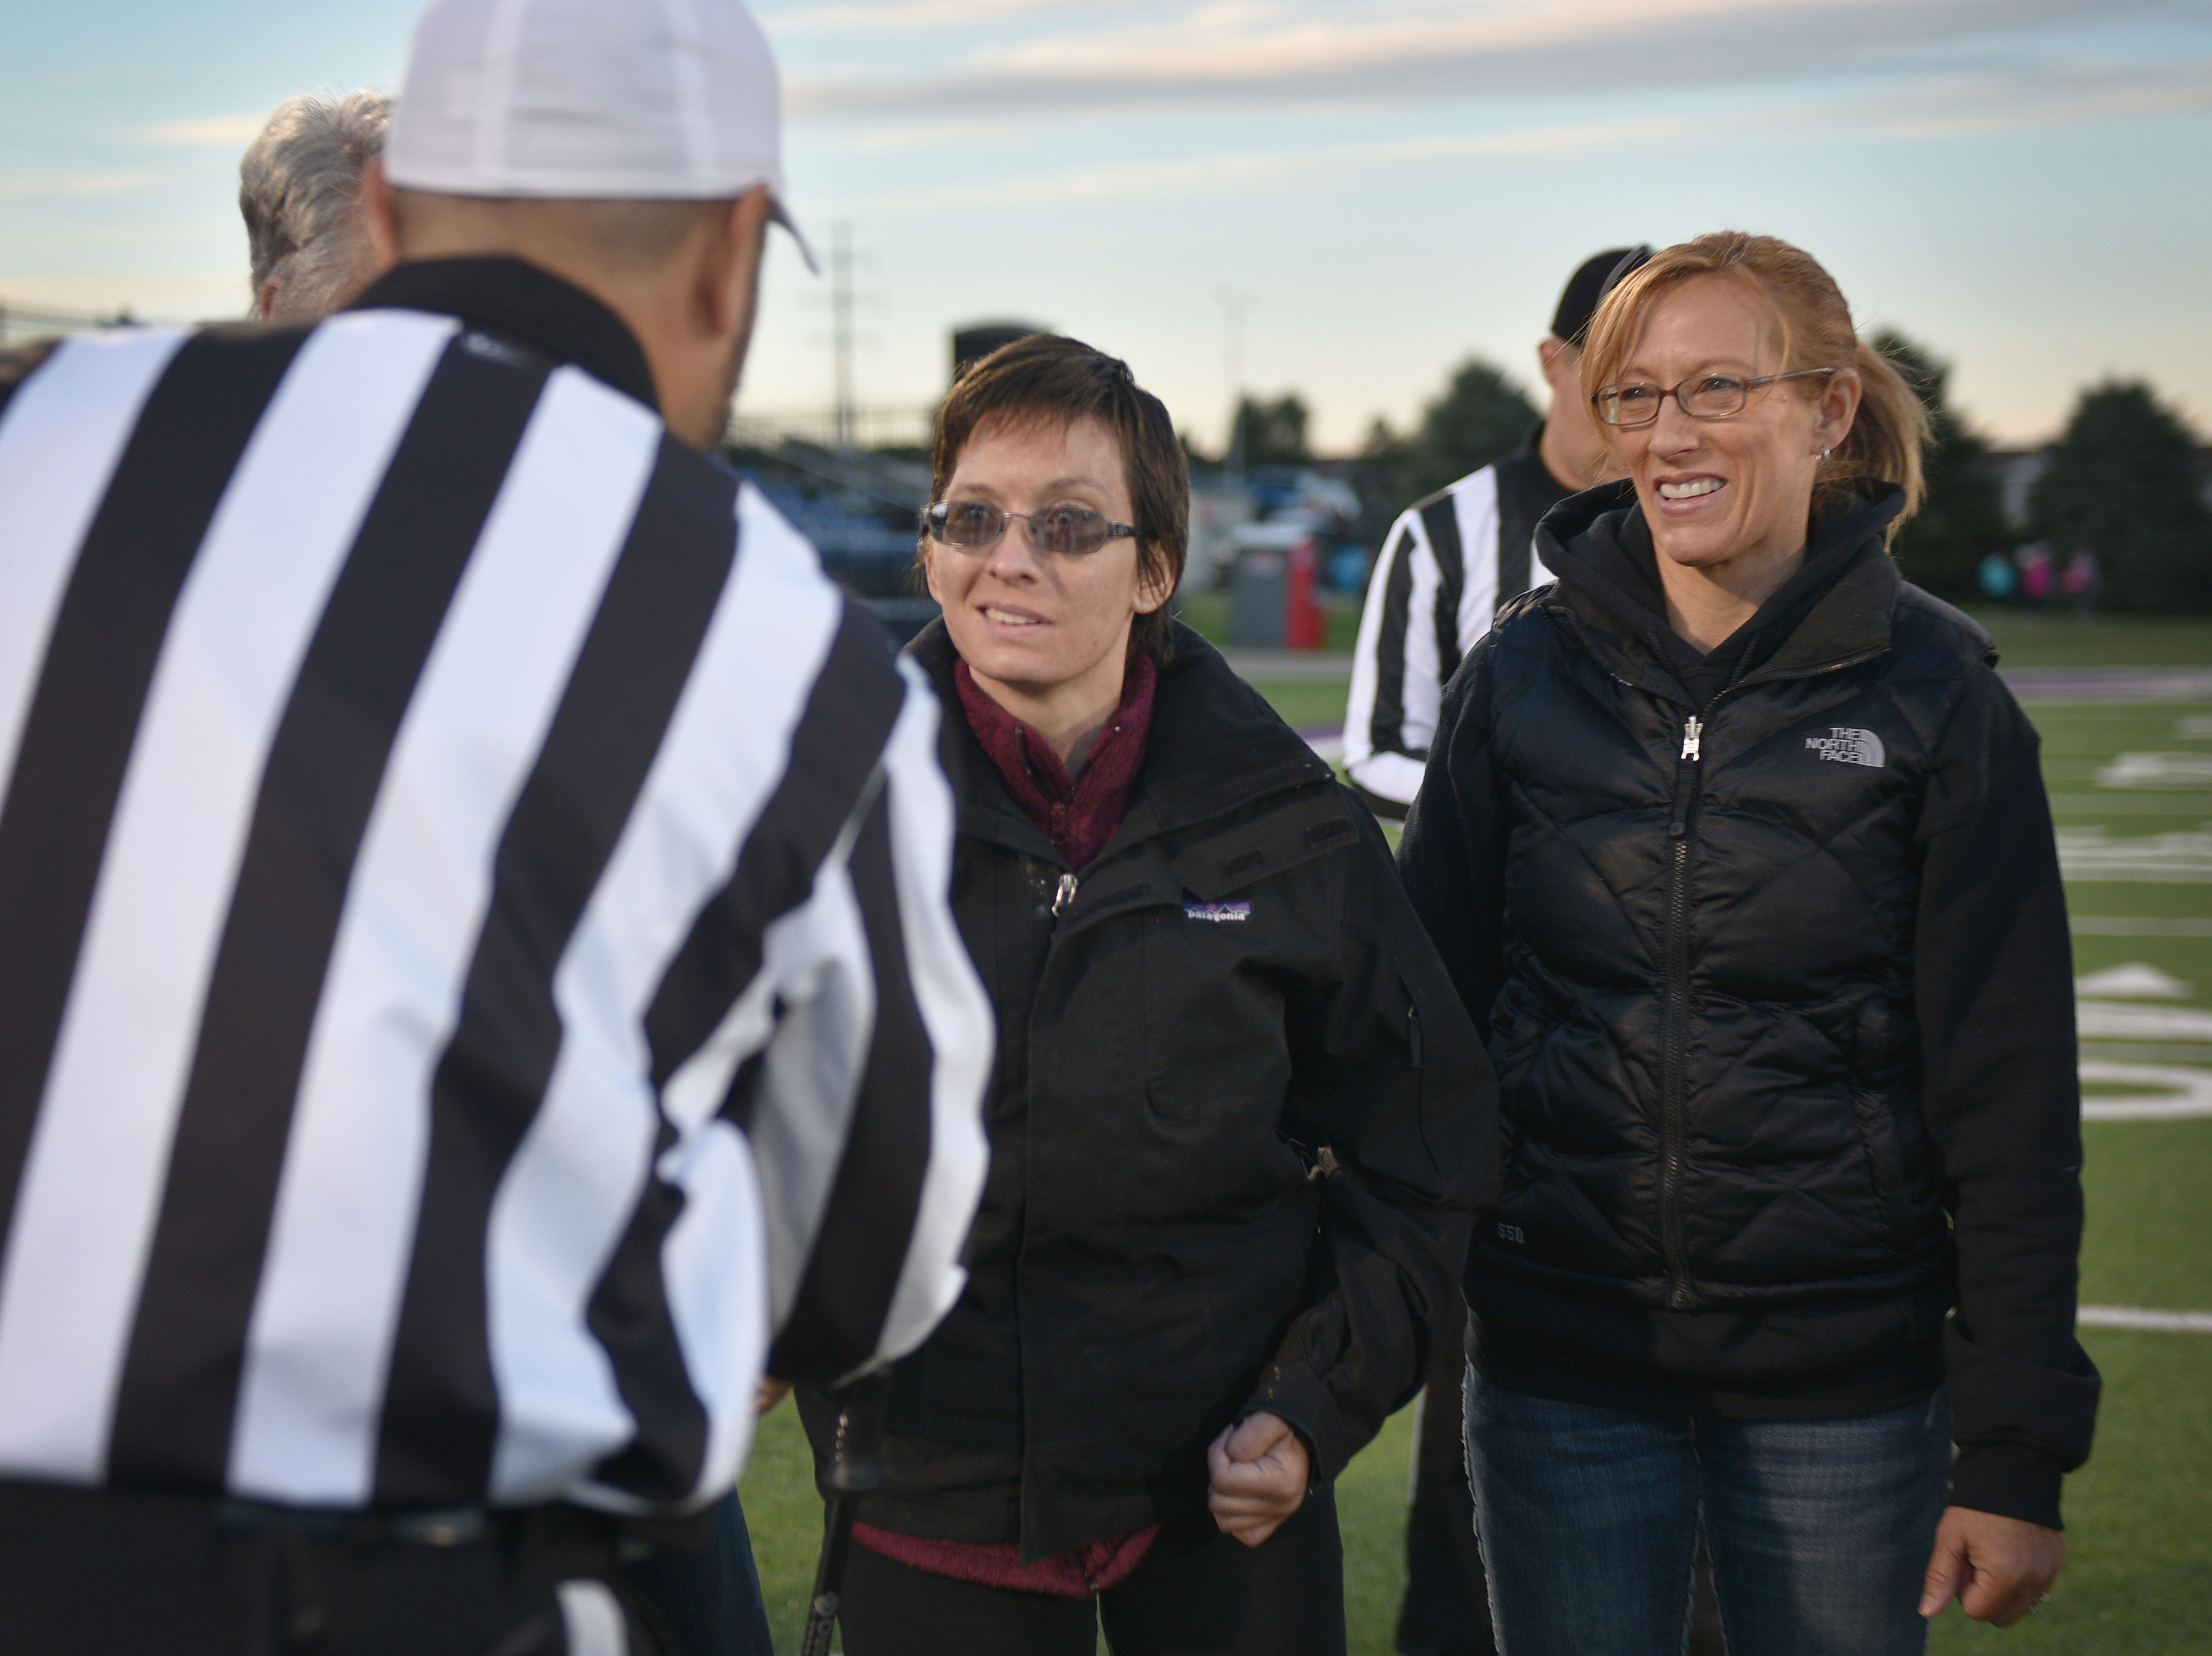 Ashley Van Hemert does the coin toss for the Sioux Falls Christian game, Friday Sept. 28, at Bob Young Field University Of Sioux Falls Stadium.